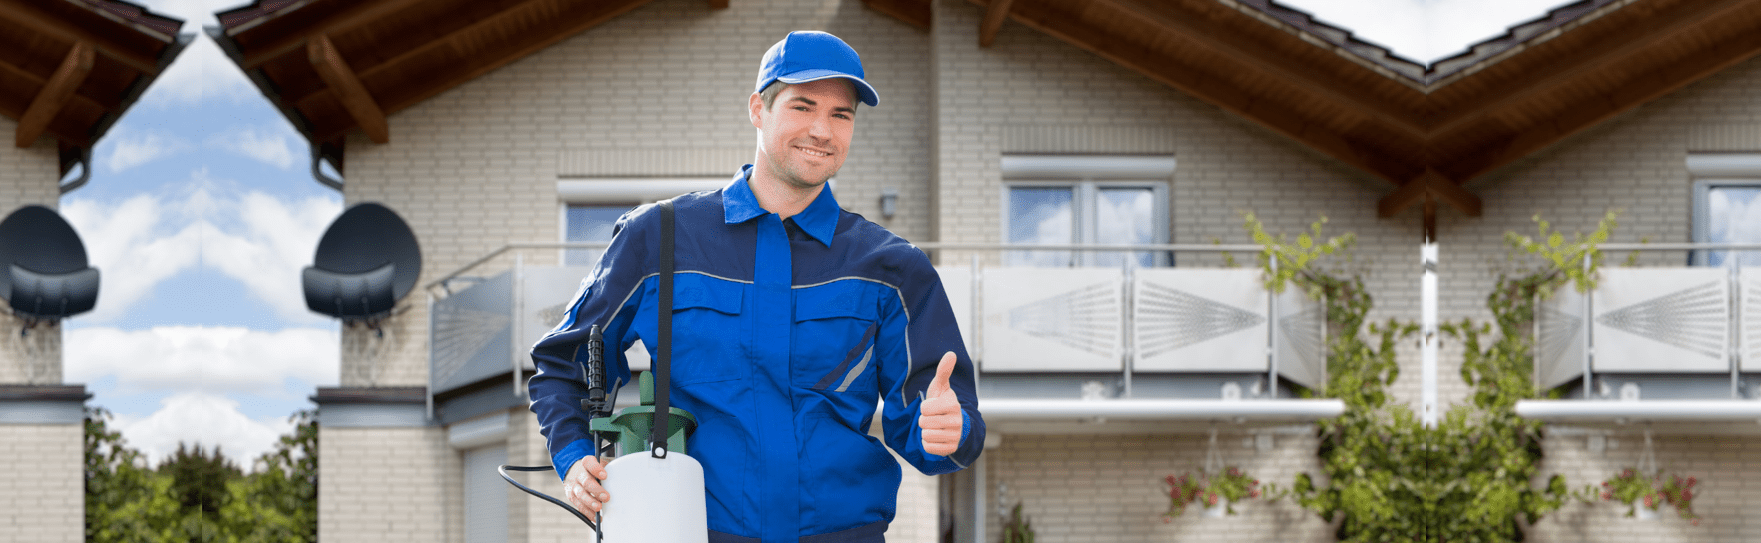 pest exterminators surrey first